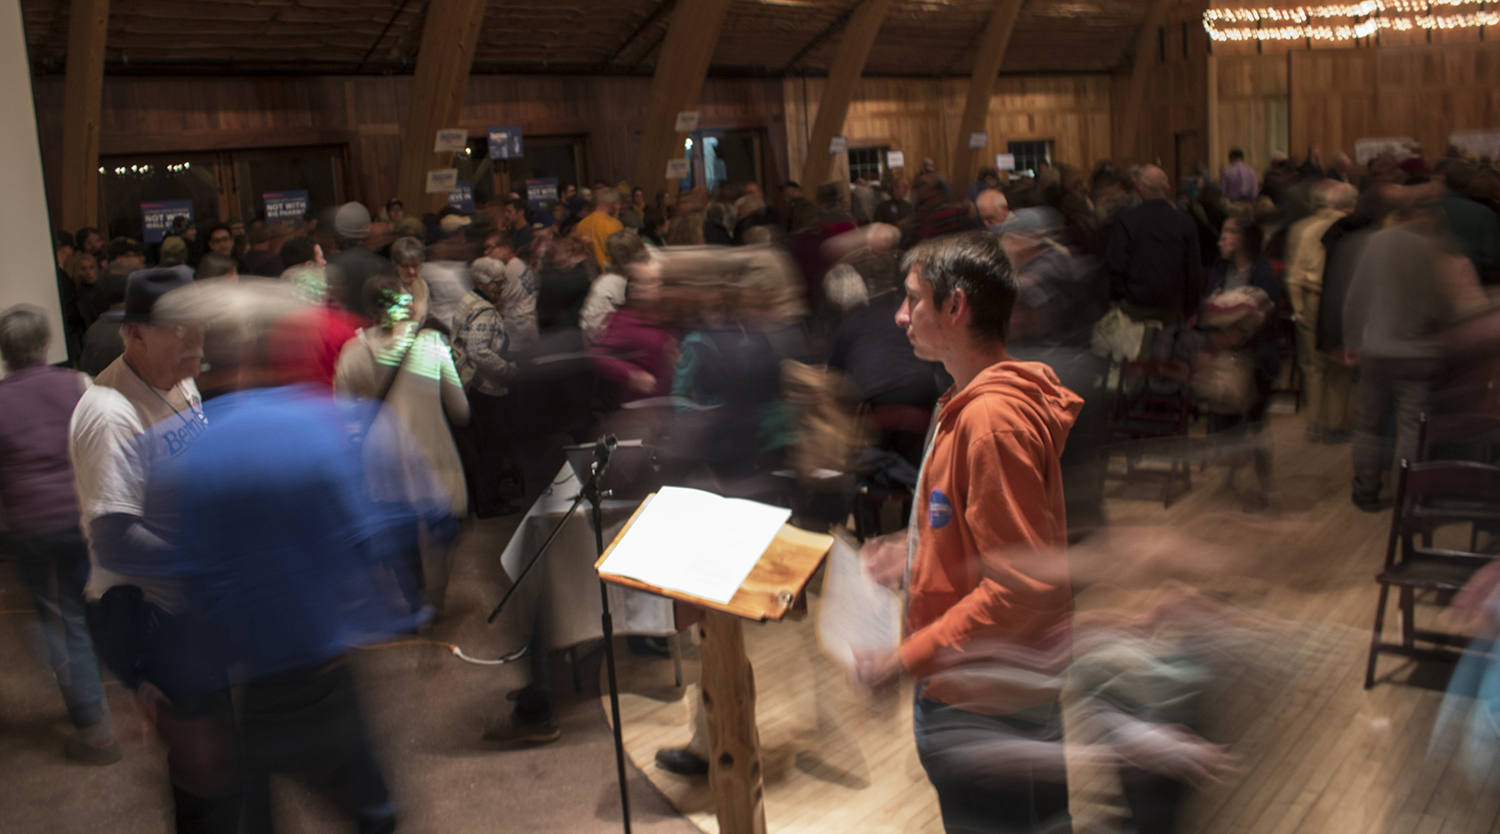 People move to different spots of the barn to be counted at the Democratic caucus at the Celebration Farm in Iowa City on Monday, Feb. 1, 2015. Democratic presidential candidate Hillary Clinton came out with four delegates while Bernie Sanders came out with three delegates.